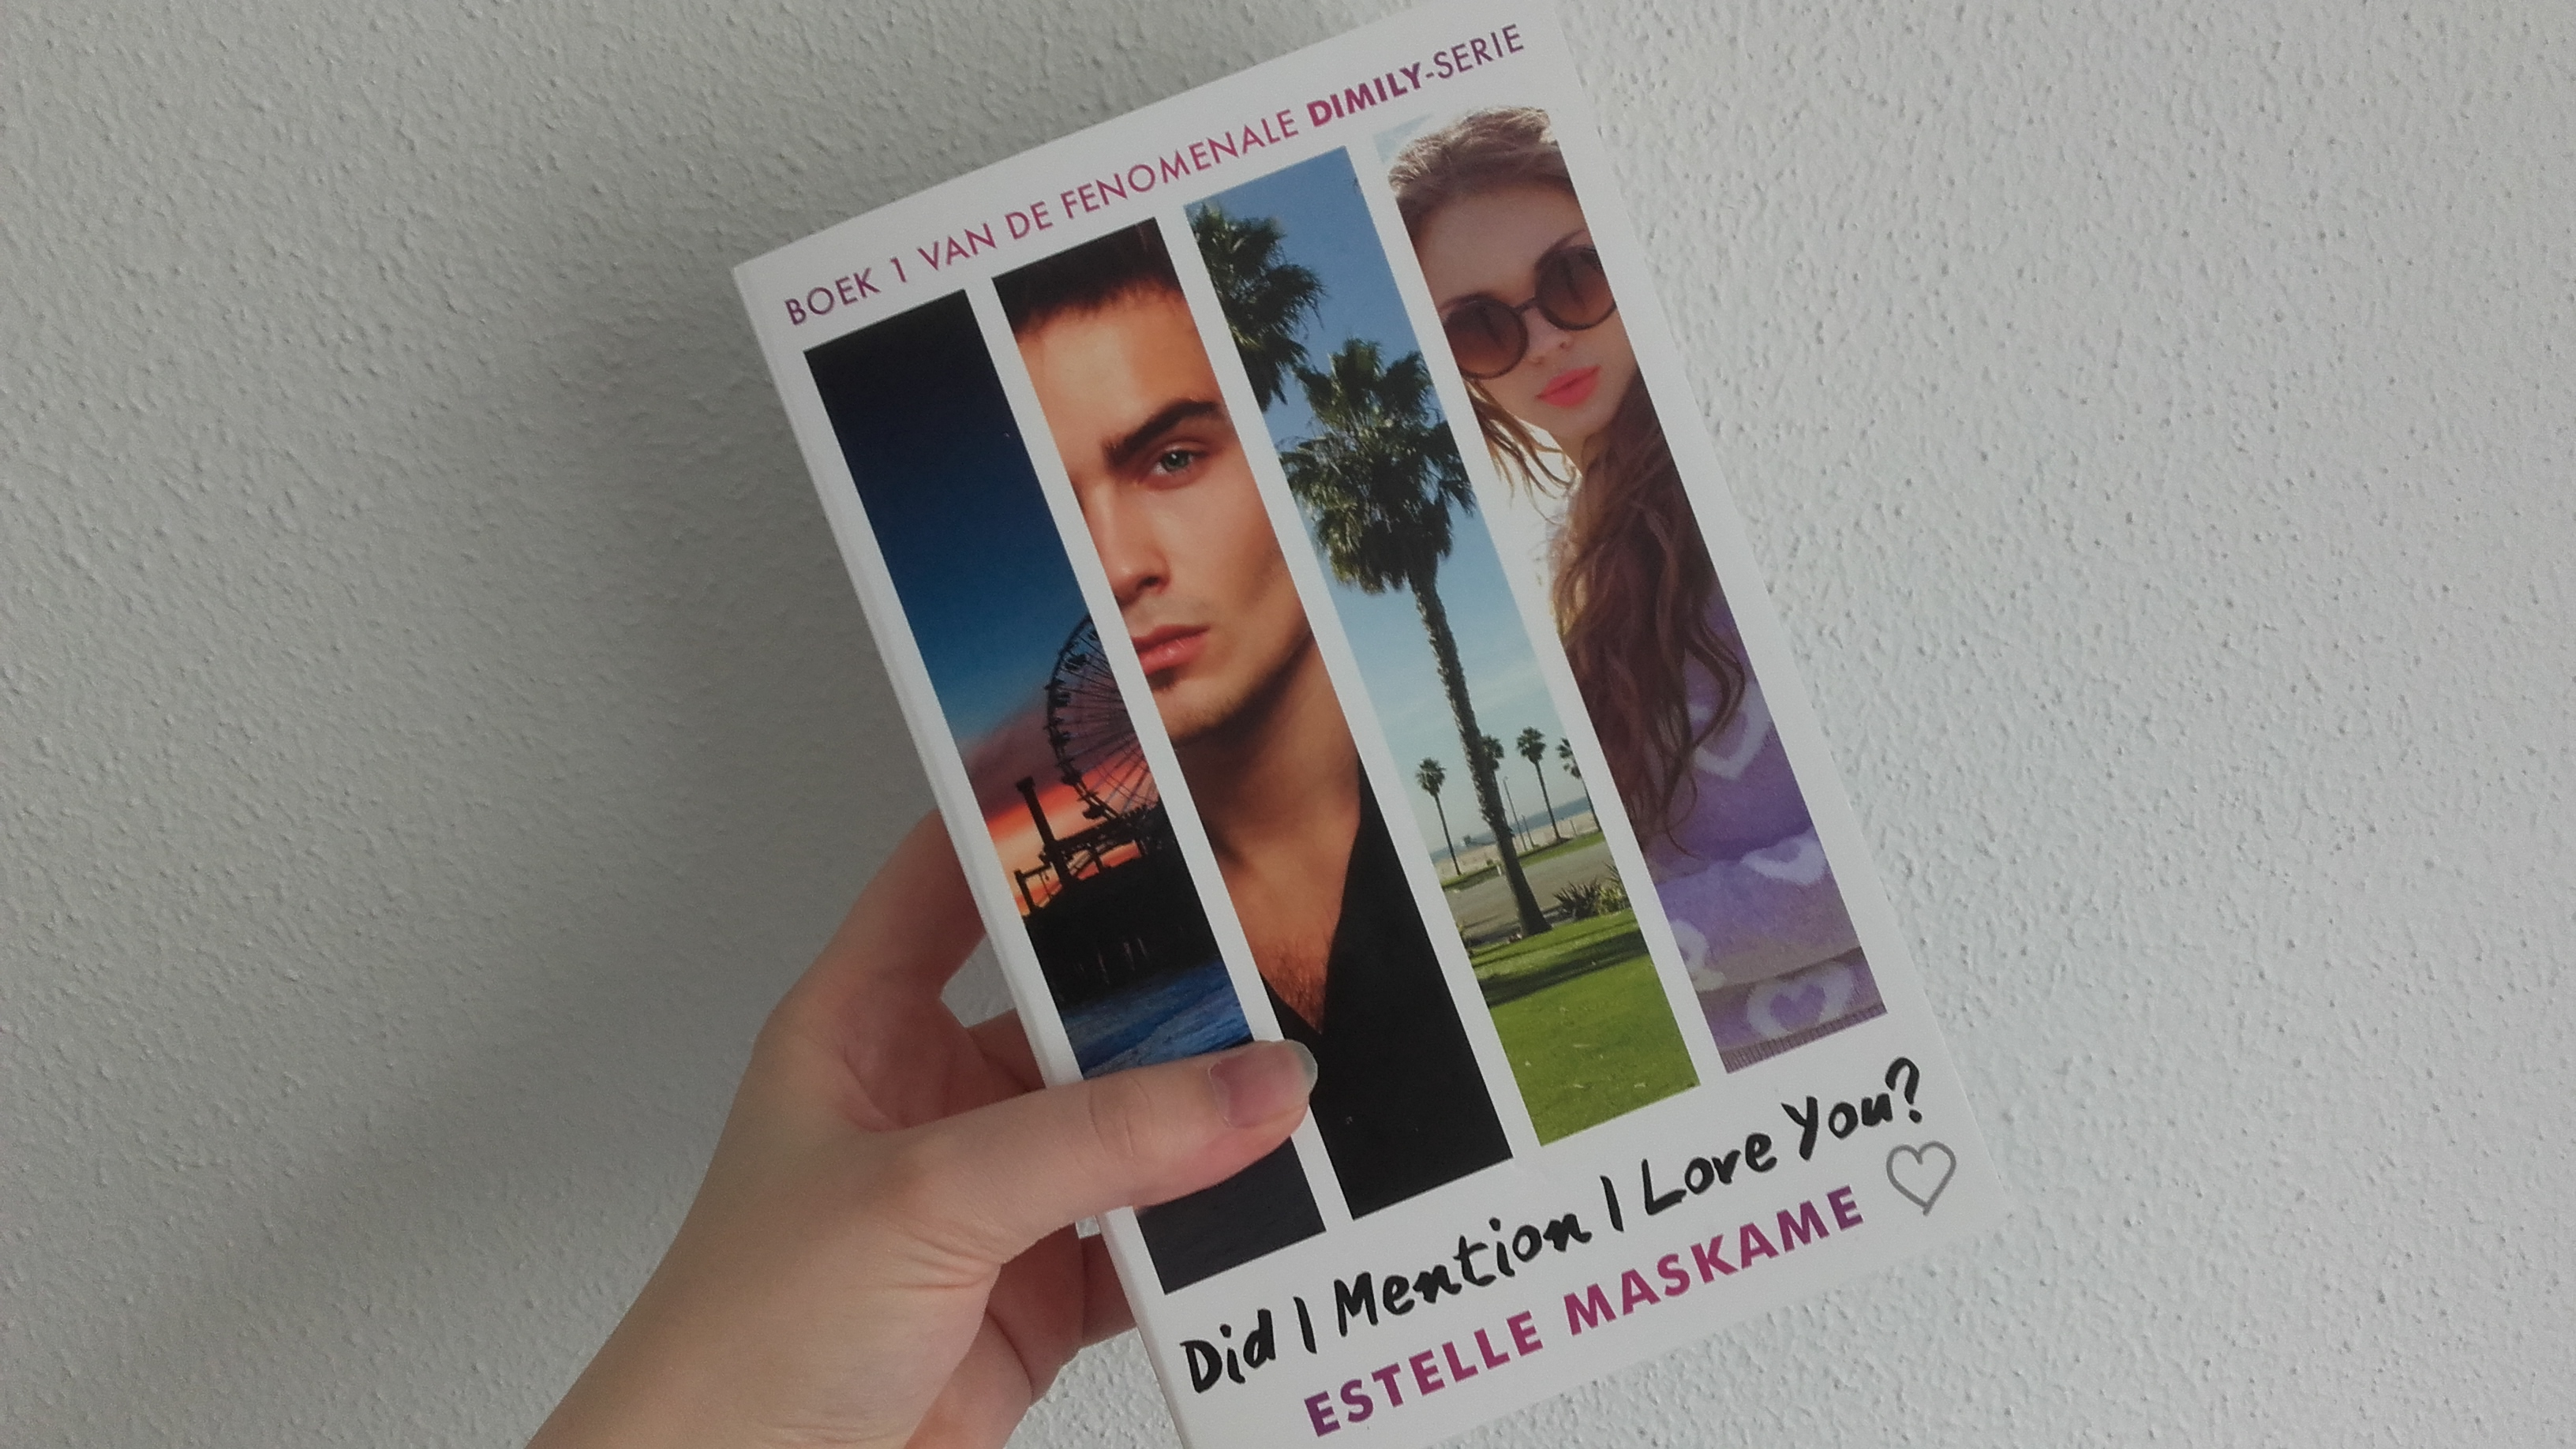 Did I mention I love you? – Estelle Maskame